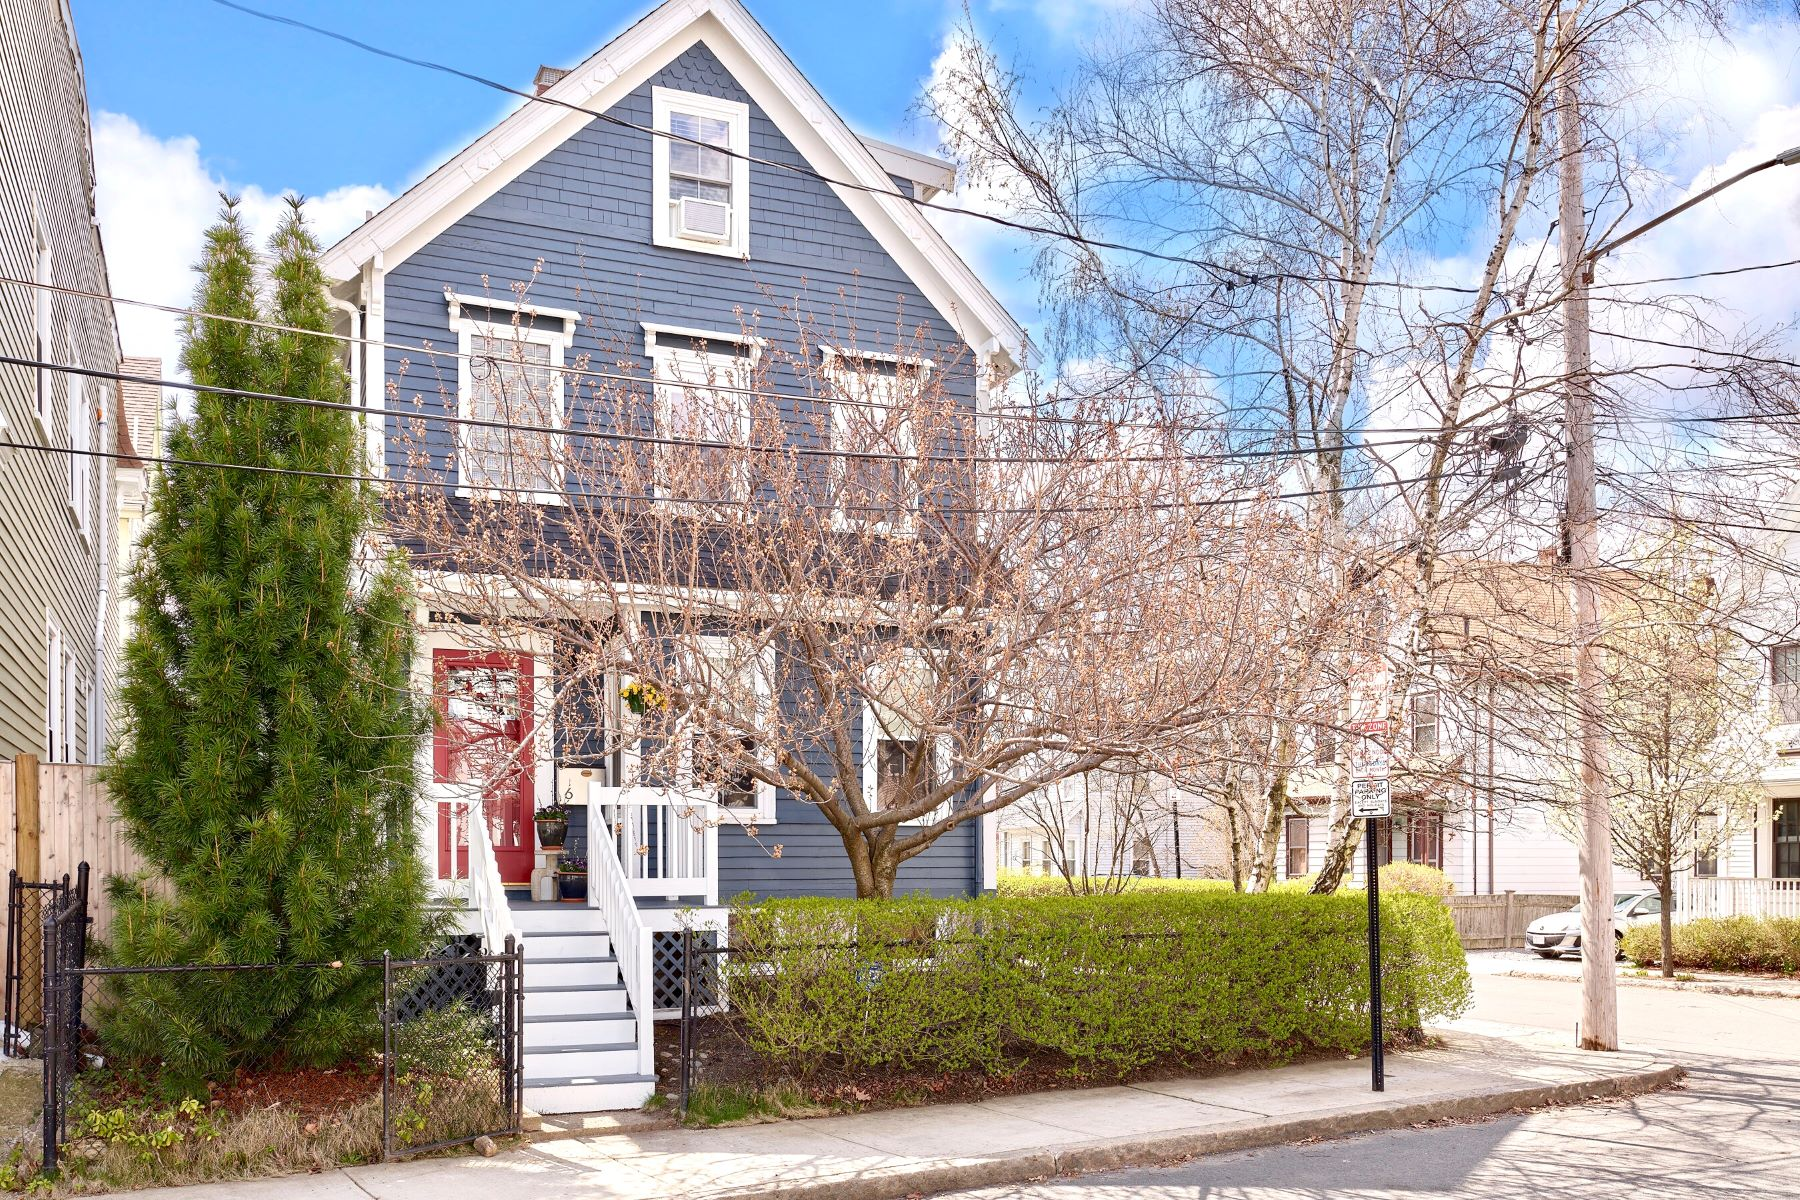 Single Family Homes for Active at Meticulously Maintained Victorian Home 6 Morgan St Somerville, Massachusetts 02143 United States